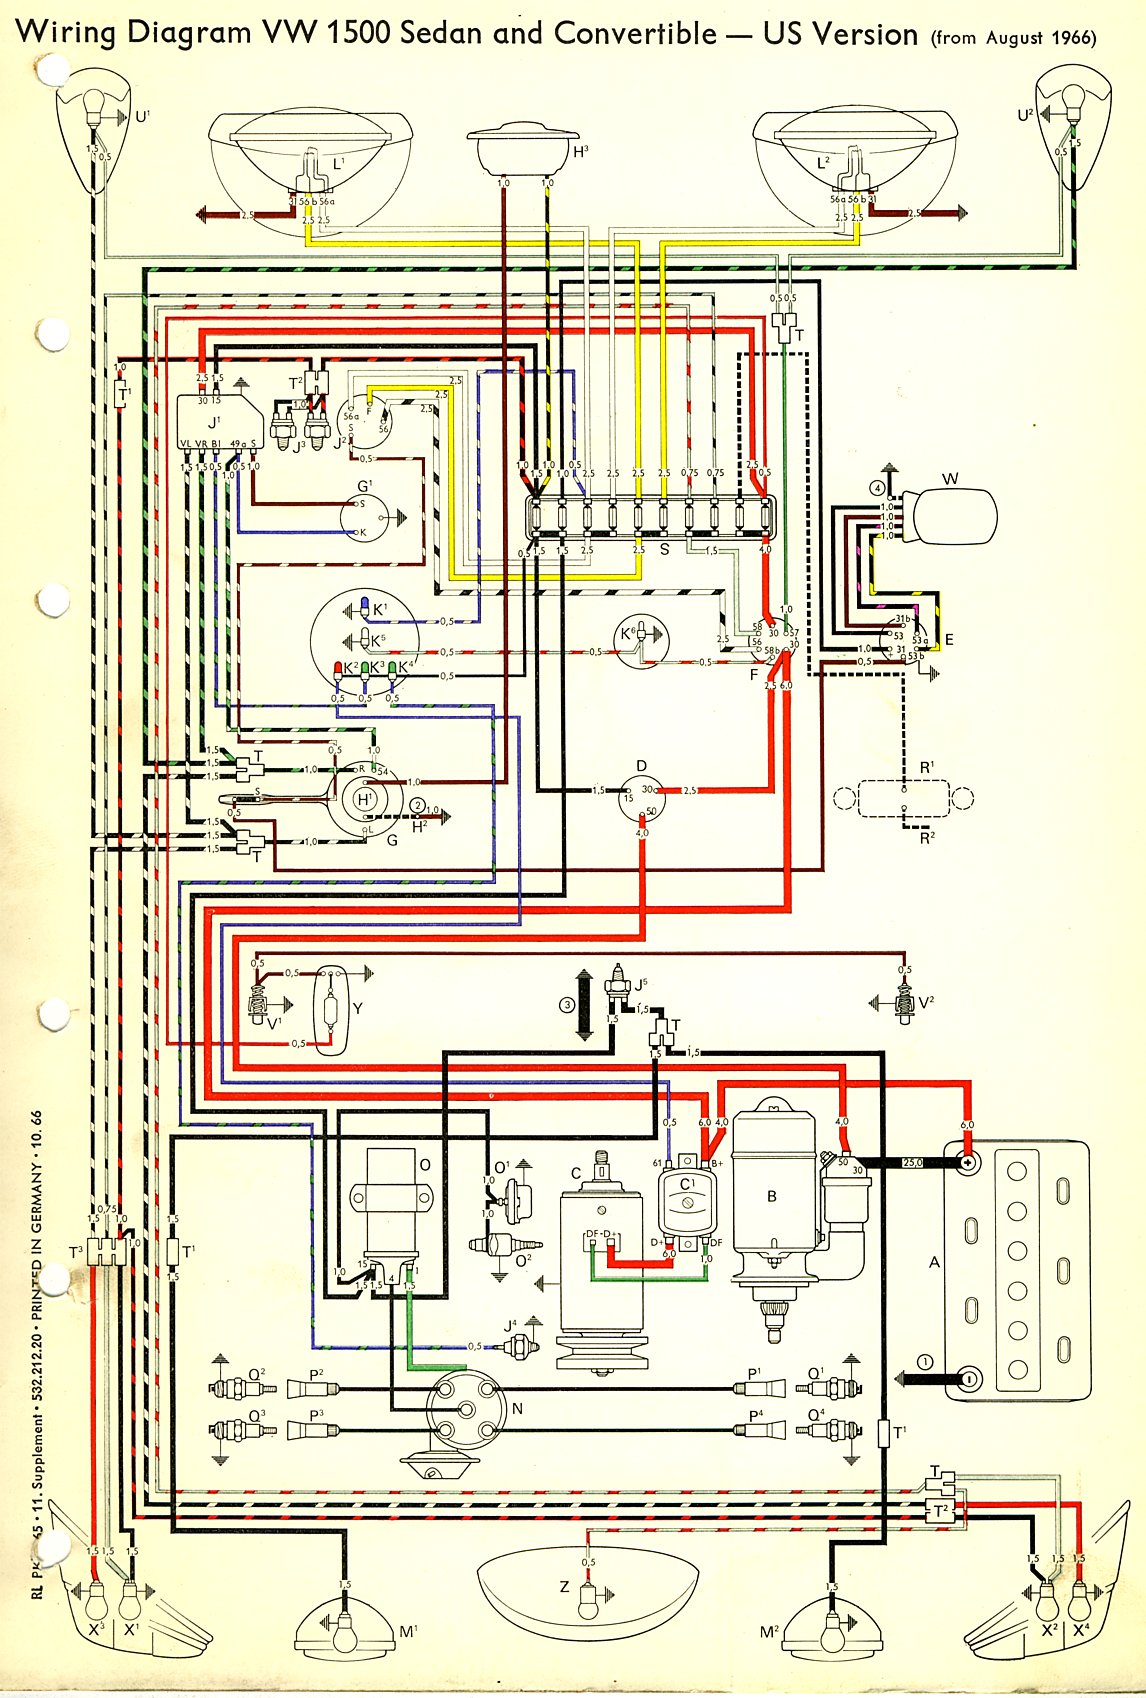 1969 vw beetle wiring wiring schematic diagram 1969 VW Bus Fuse Box 1973 vw bus wiring harness wiring diagram online 1969 vw beetle frame 1973 vw wiring harness